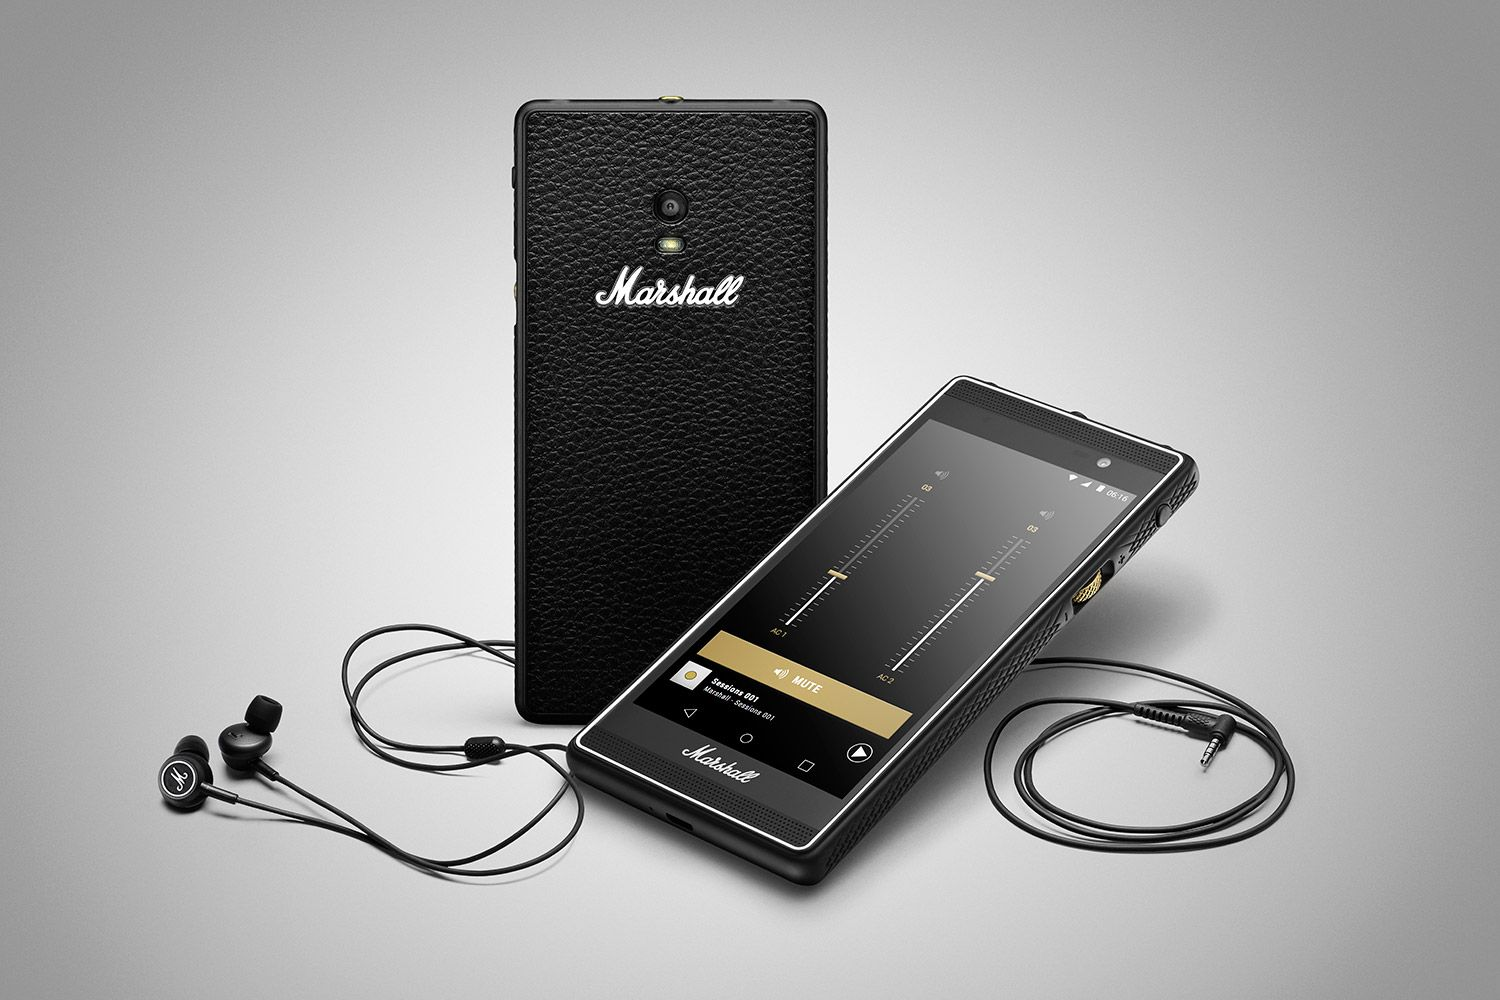 For Music Lovers by Music Lovers: An In-Depth Look at Marshall's London Smartphone